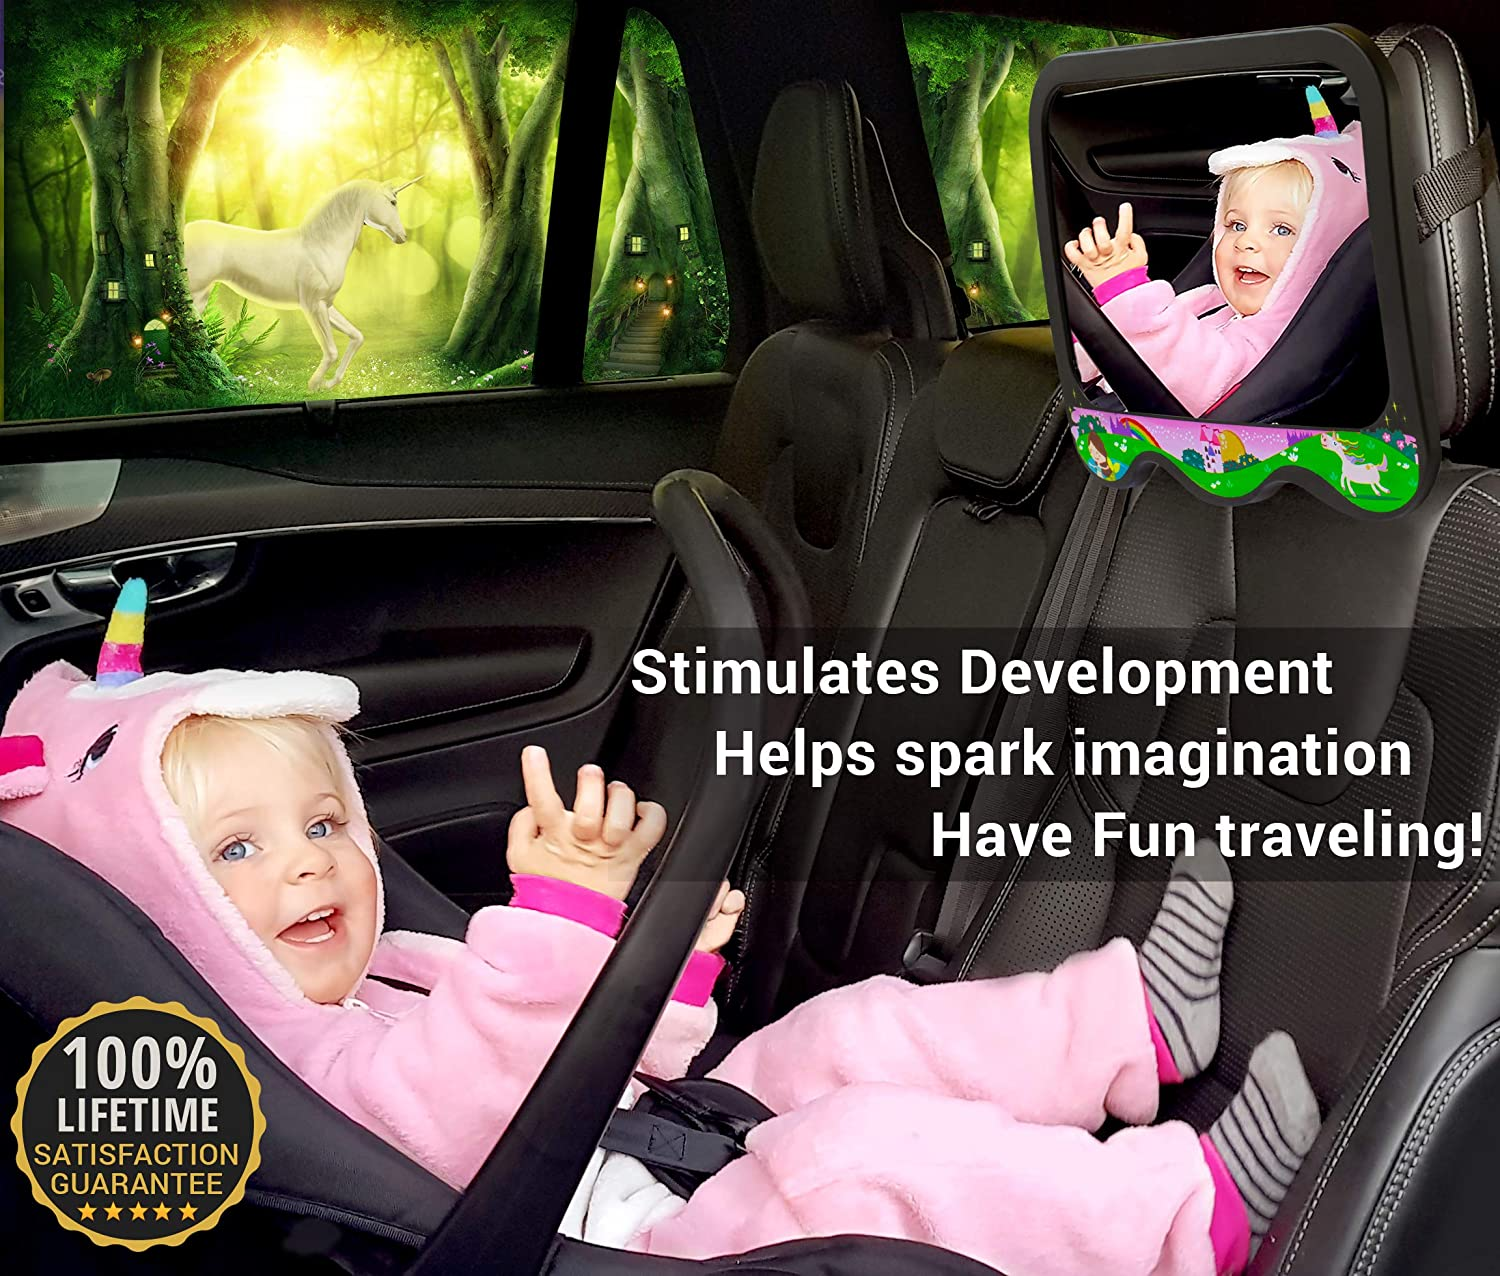 COZY GREENS Baby Car Mirror Girls Theme Baby Mirror for Car Back Seat Wide View Carseat Mirrors Backseat Rear Facing 100/% Lifetime Satisfaction Guarantee Shatterproof Crash Tested Stable